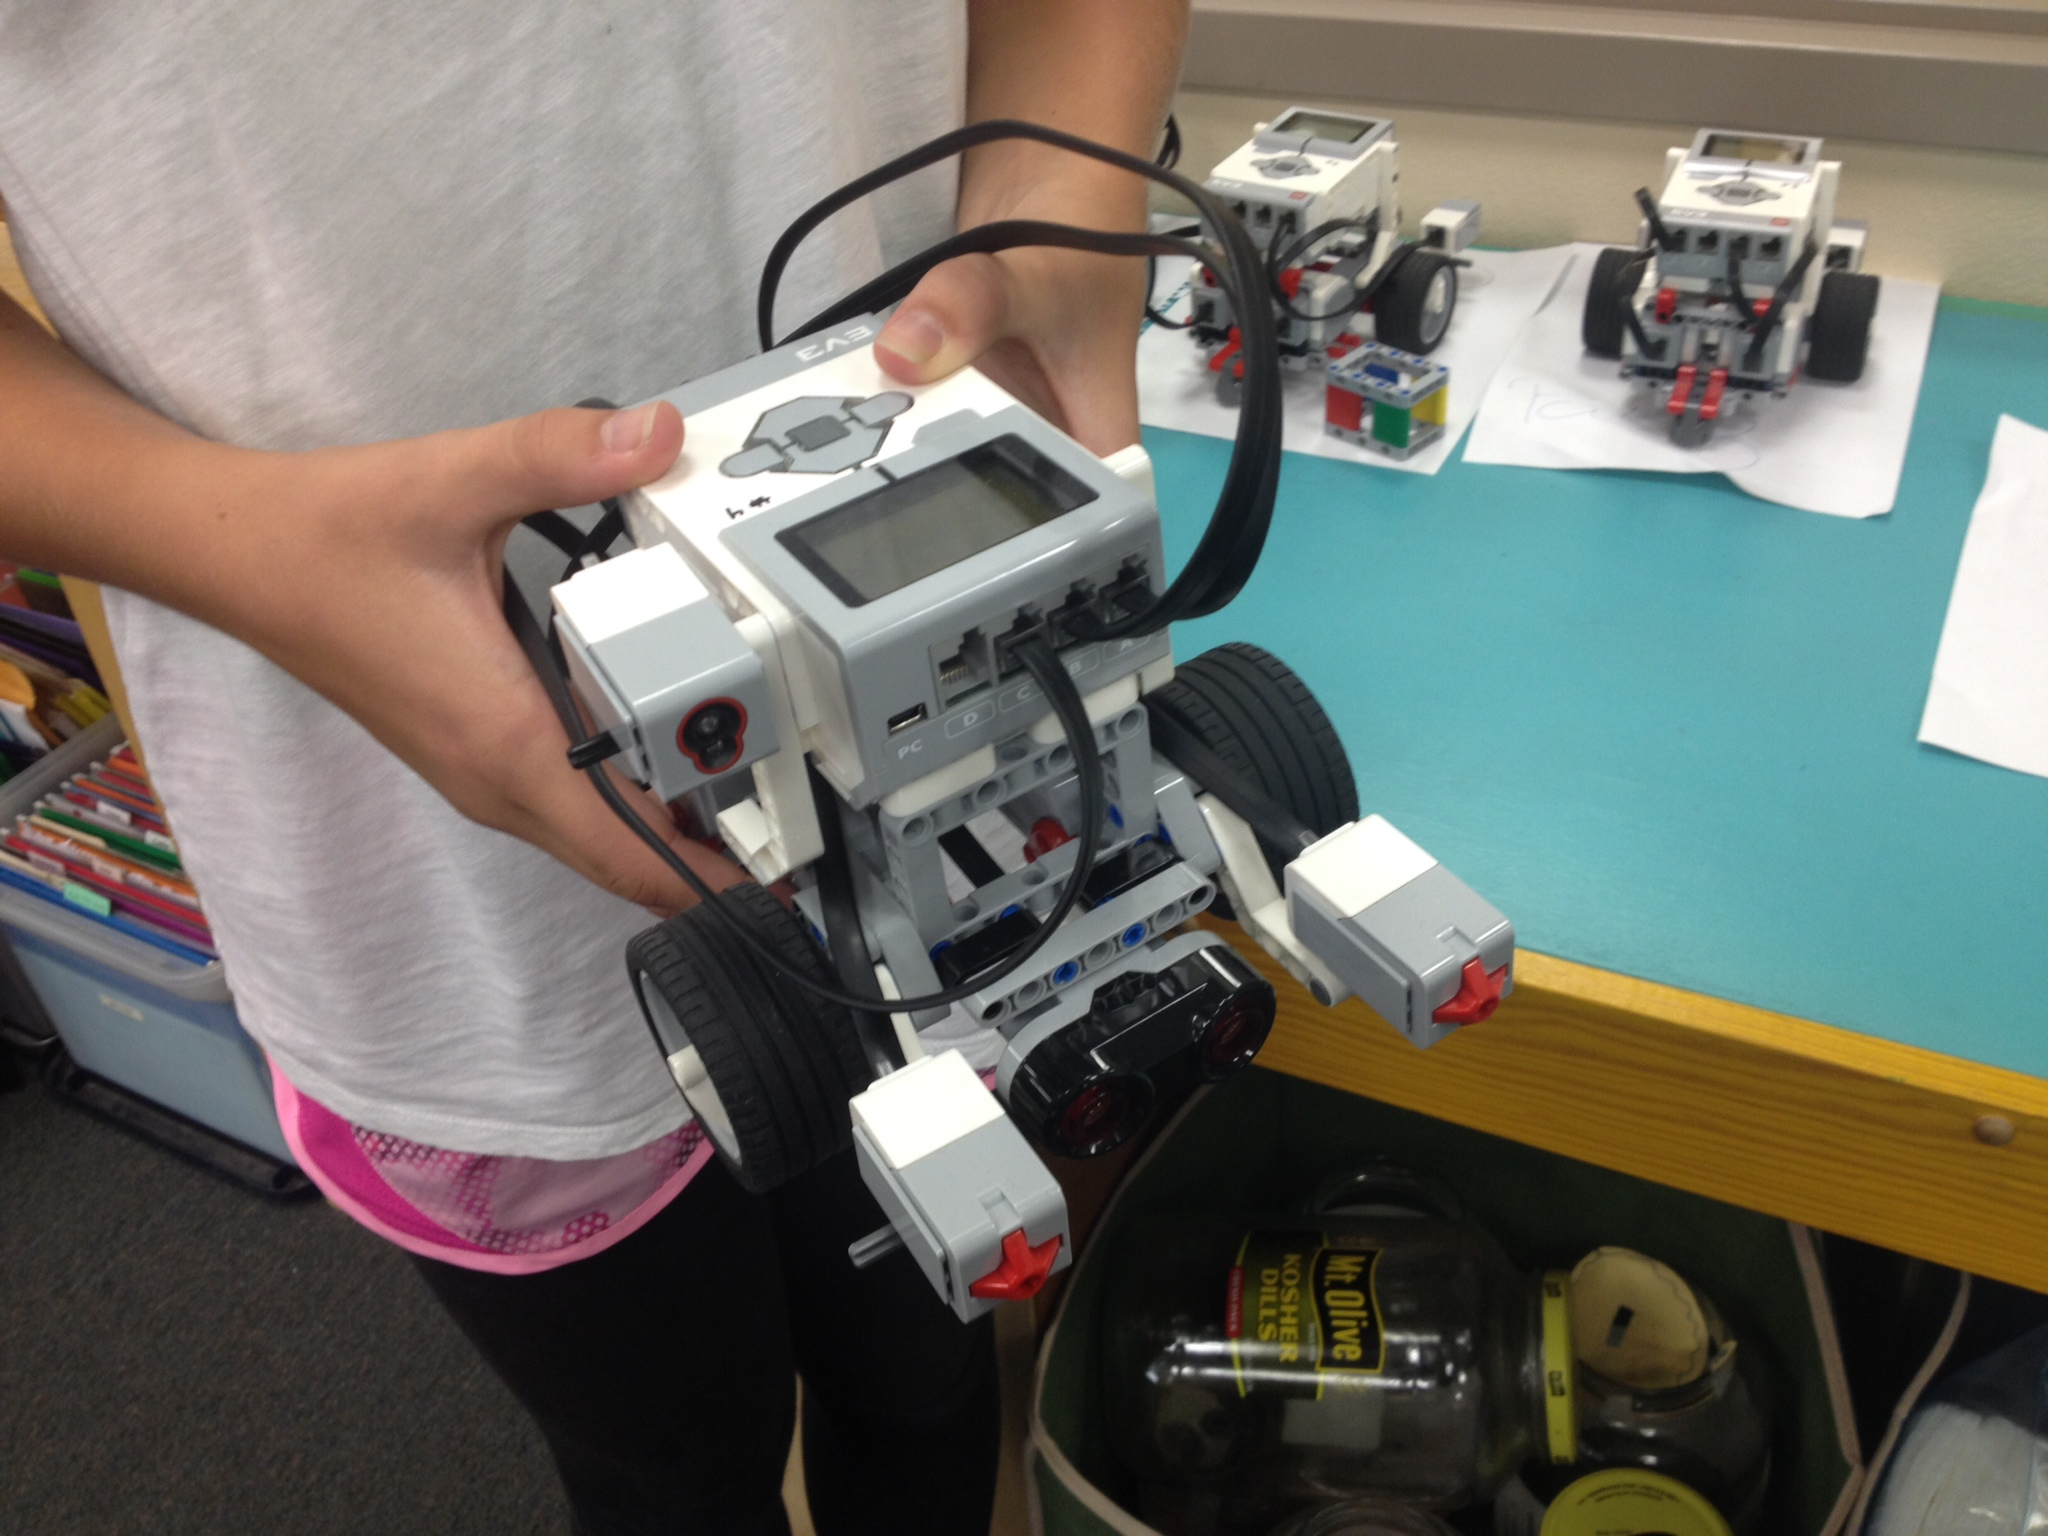 MSP middle school student showing off a robotics project